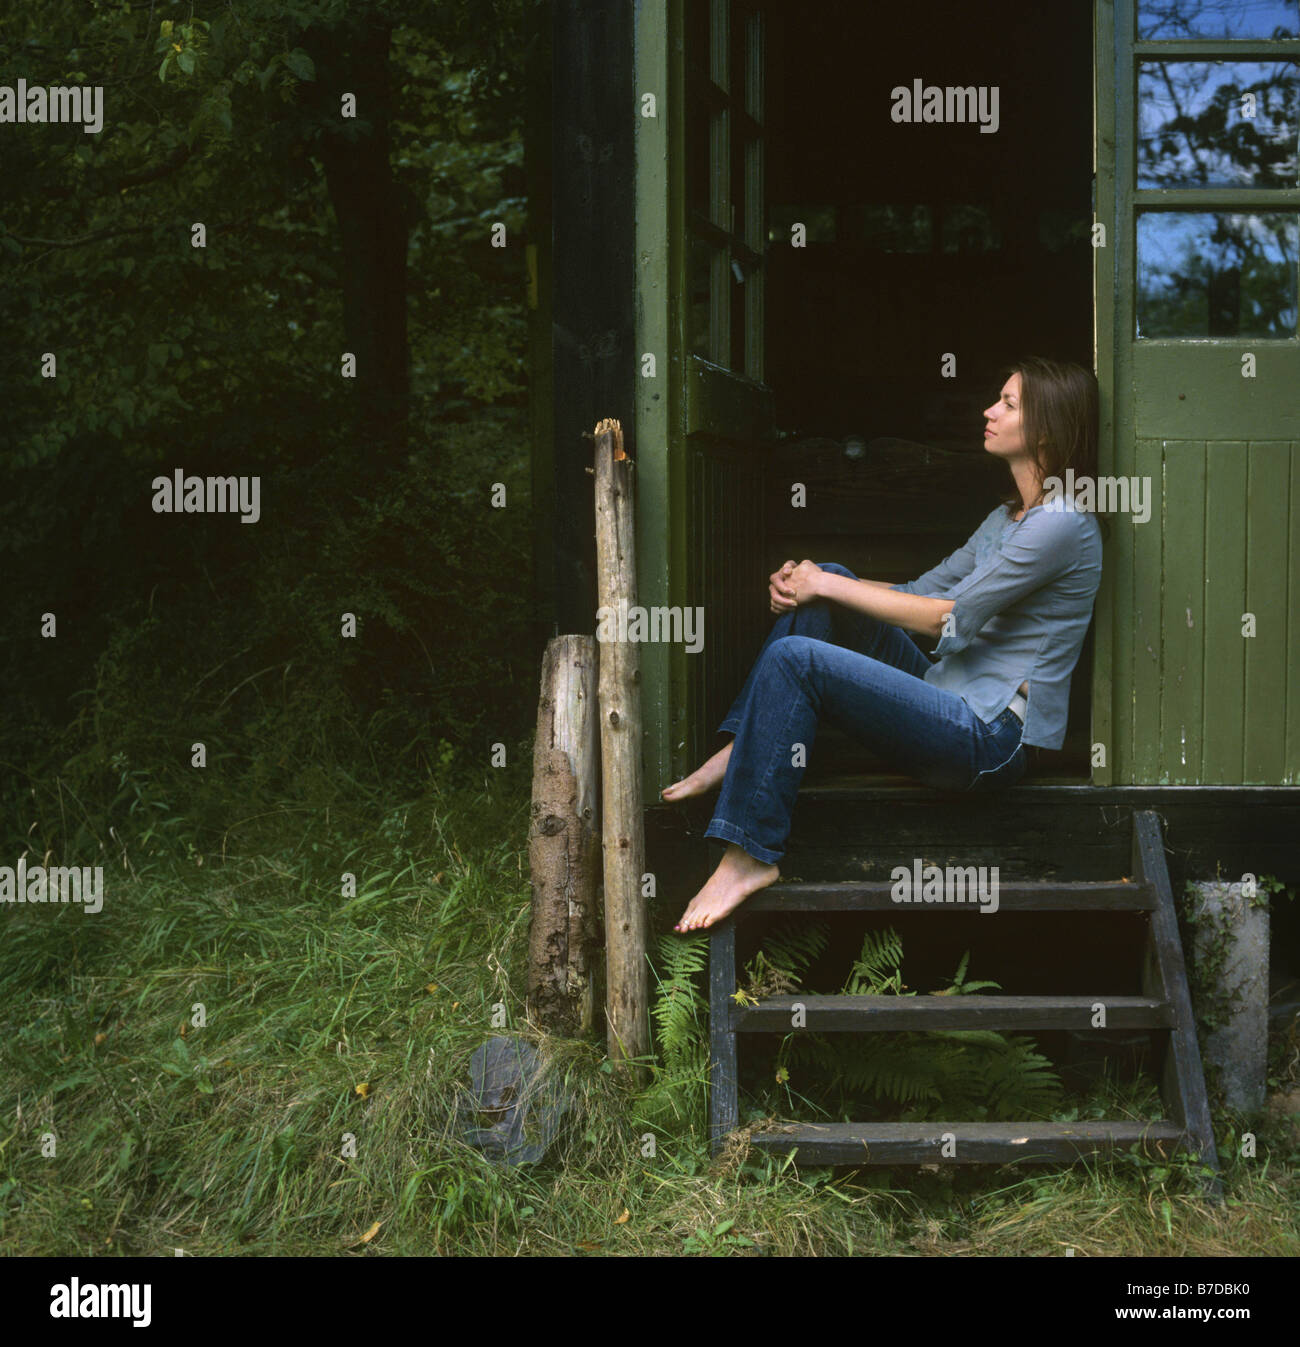 woman relaxing by summer house - Stock Image